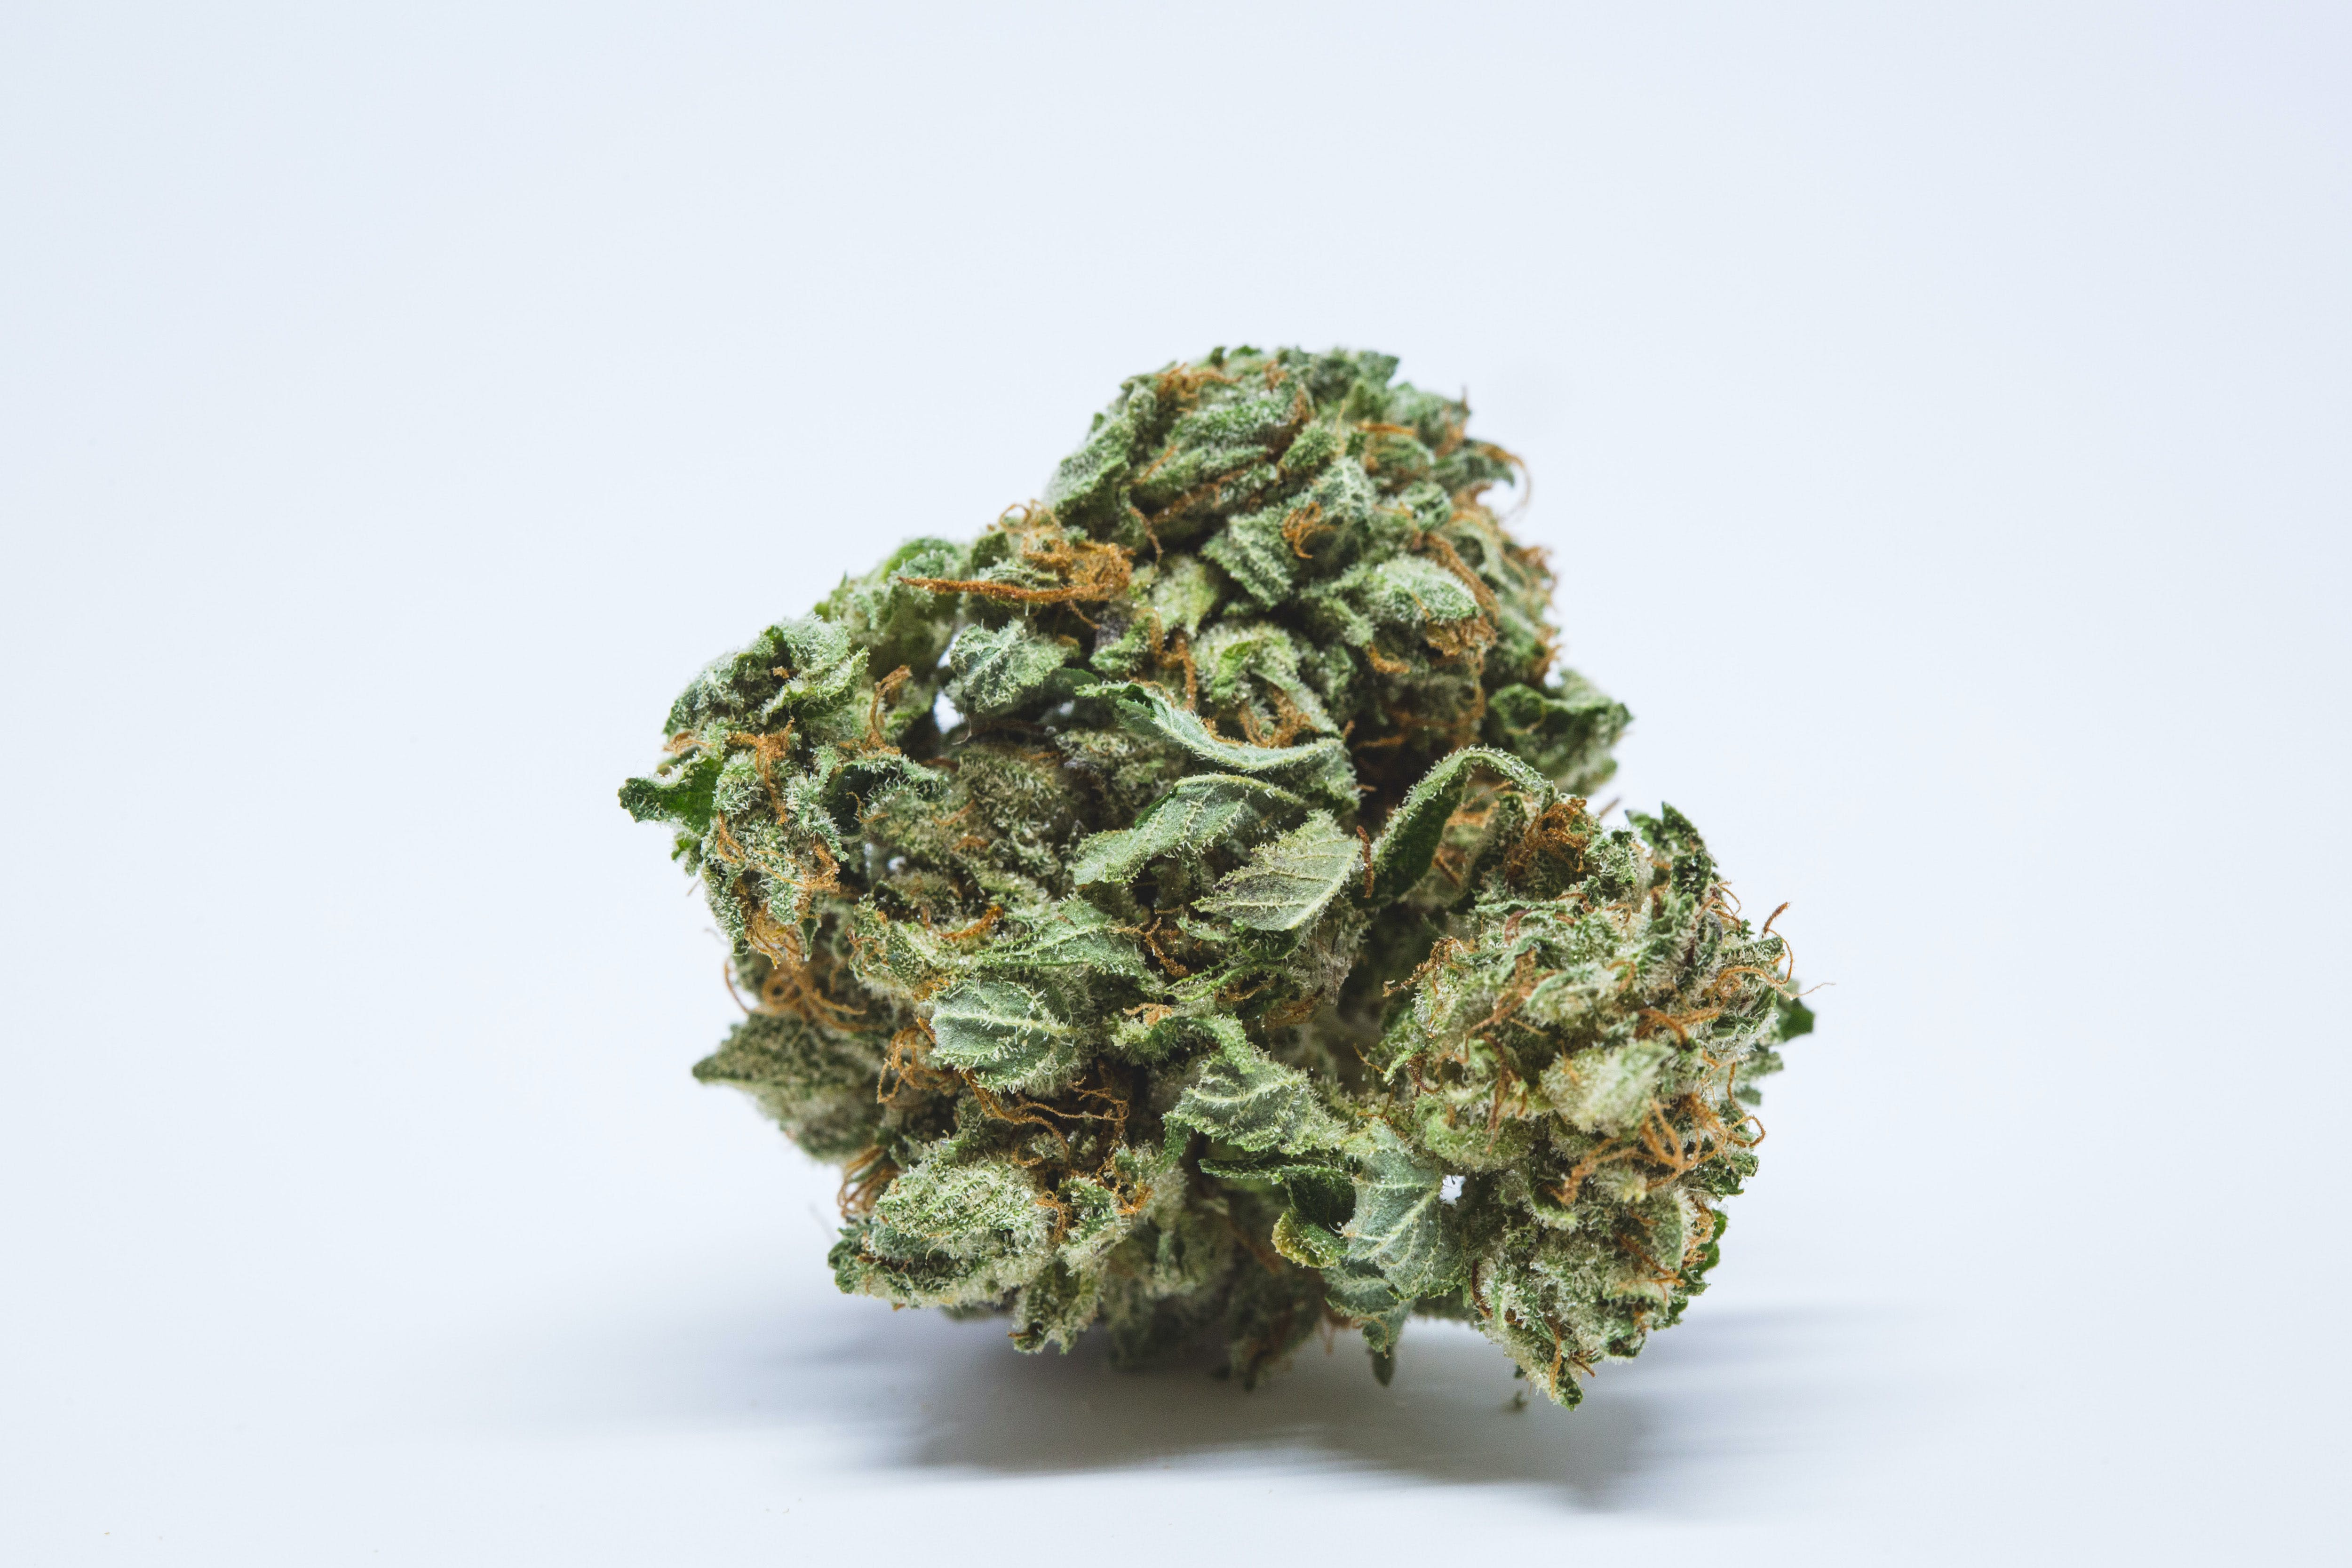 Diamond Valley Kush Weed; Diamond Valley Kush Cannabis Strain; Diamond Valley Kush Hybrid Marijuana Strain